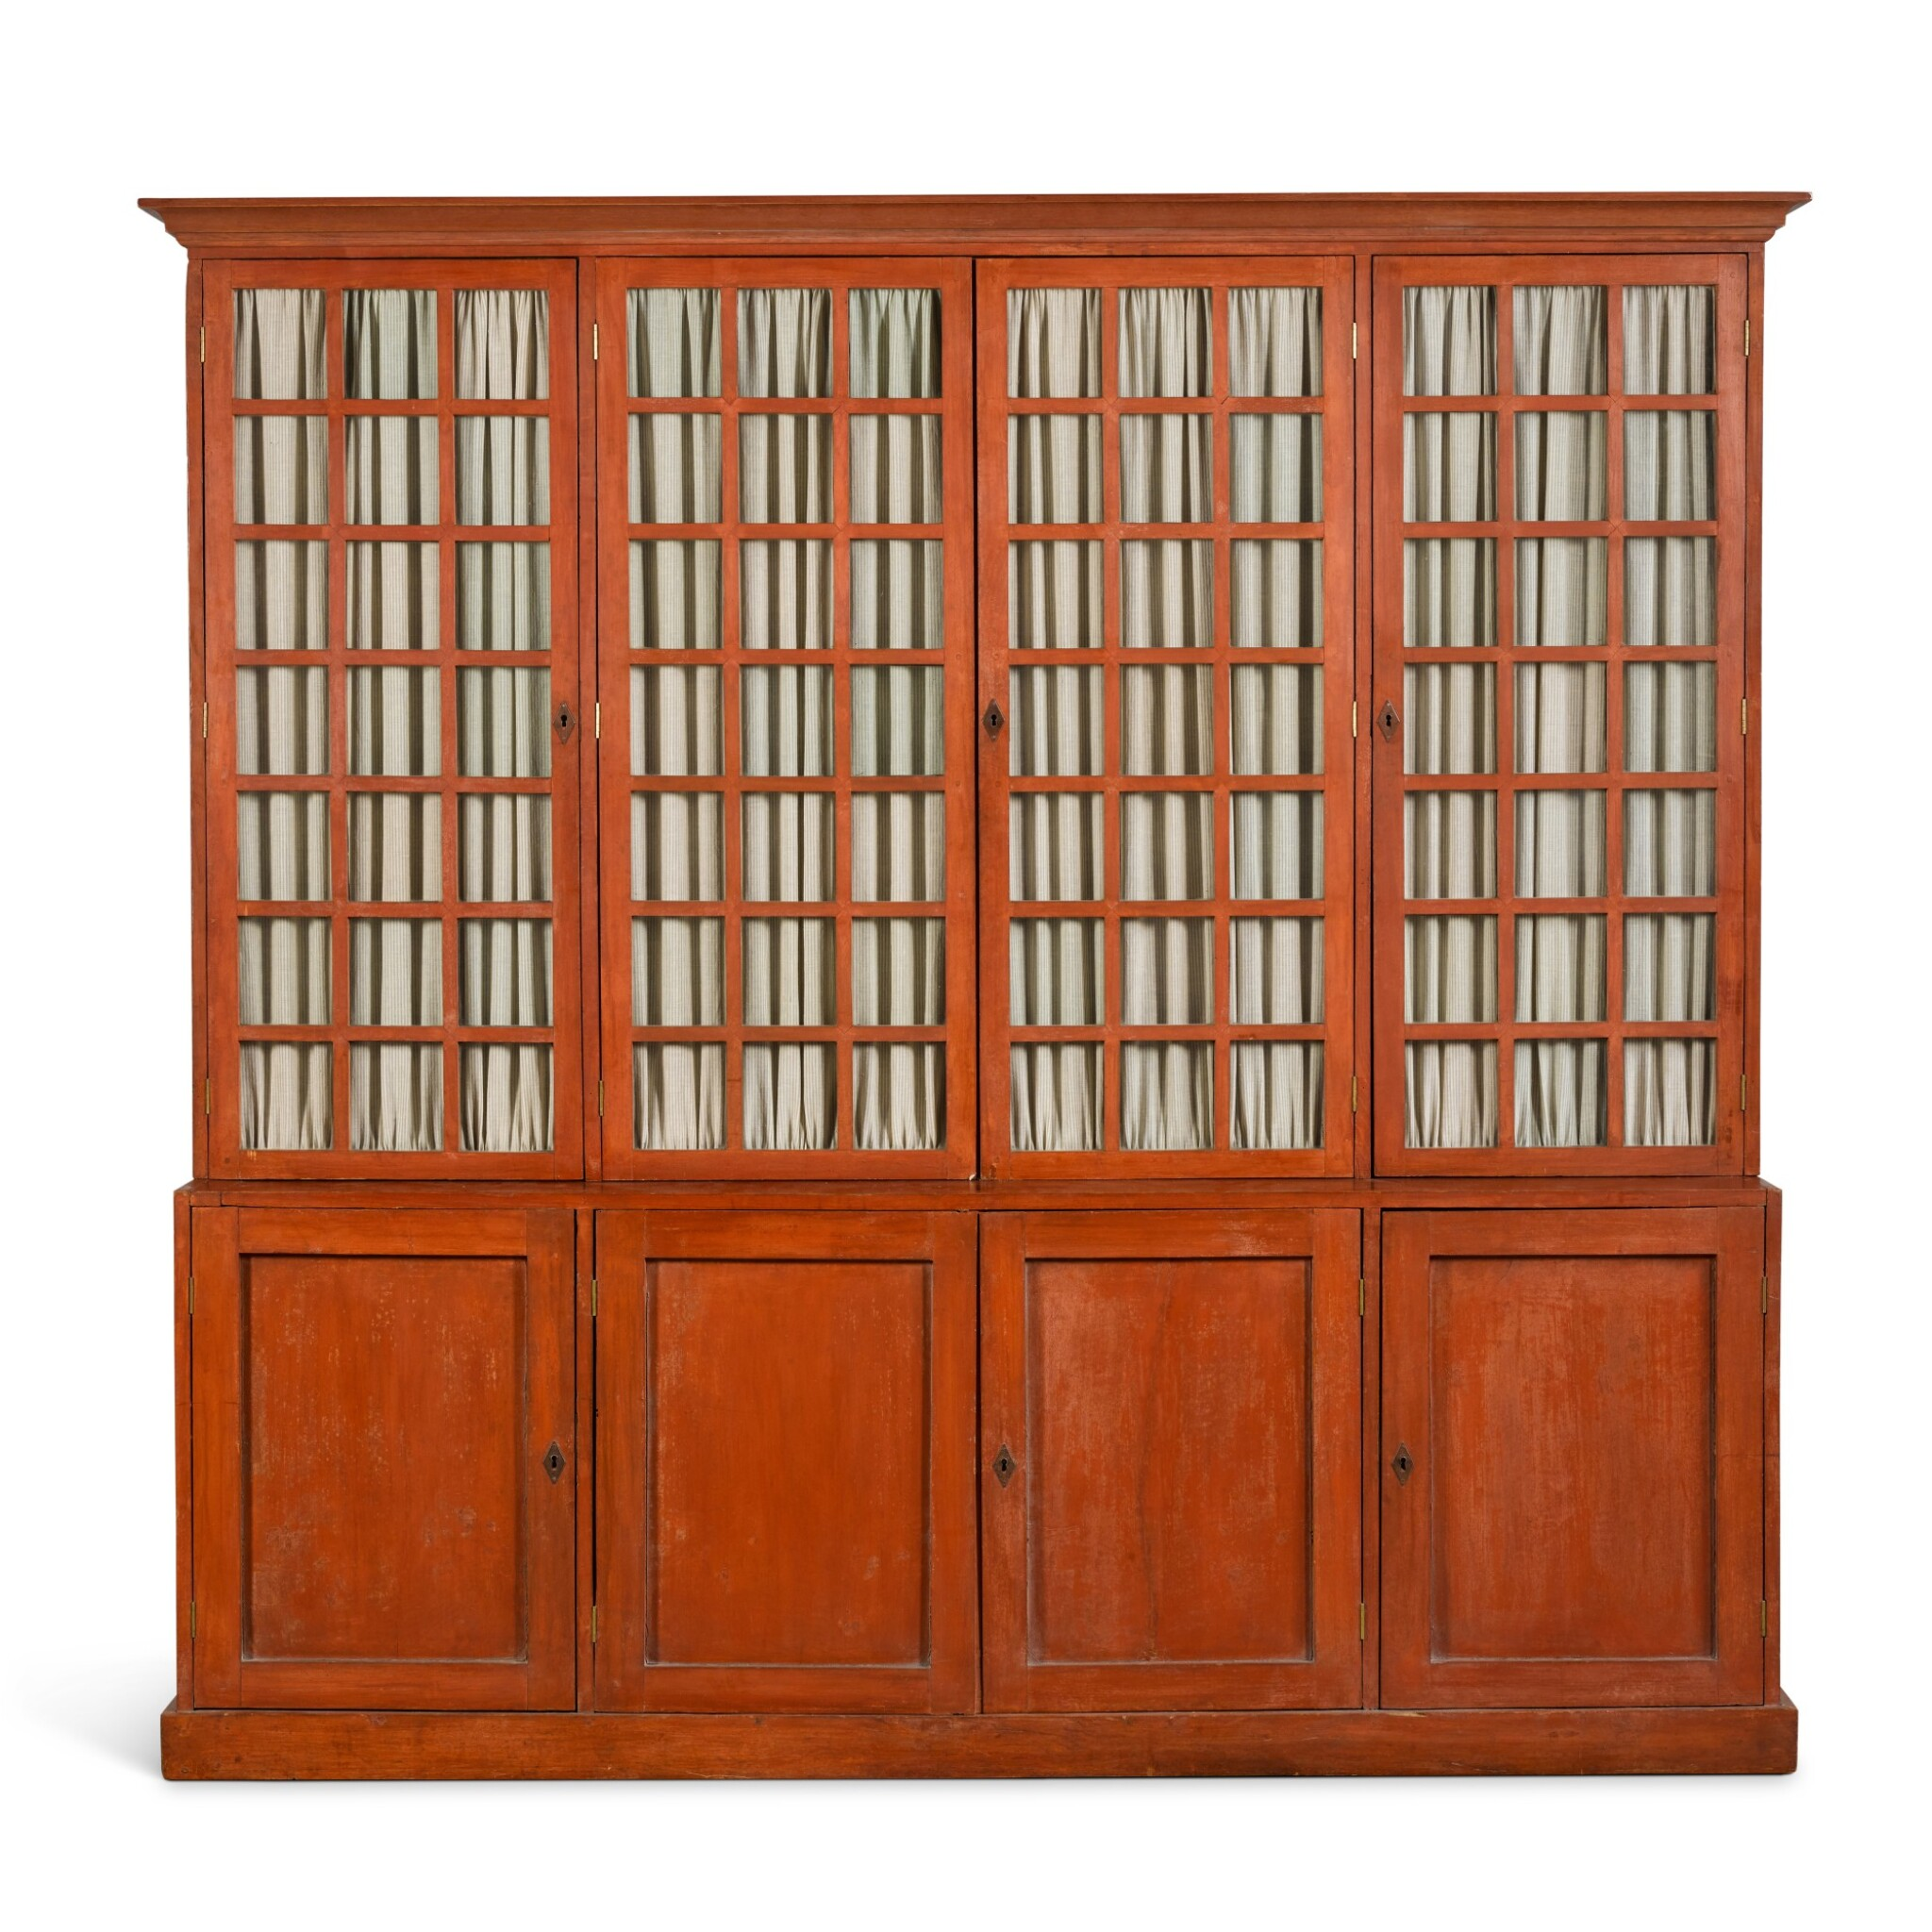 View full screen - View 1 of Lot 114. A PAINTED BOOKCASE, EARLY 20TH CENTURY.